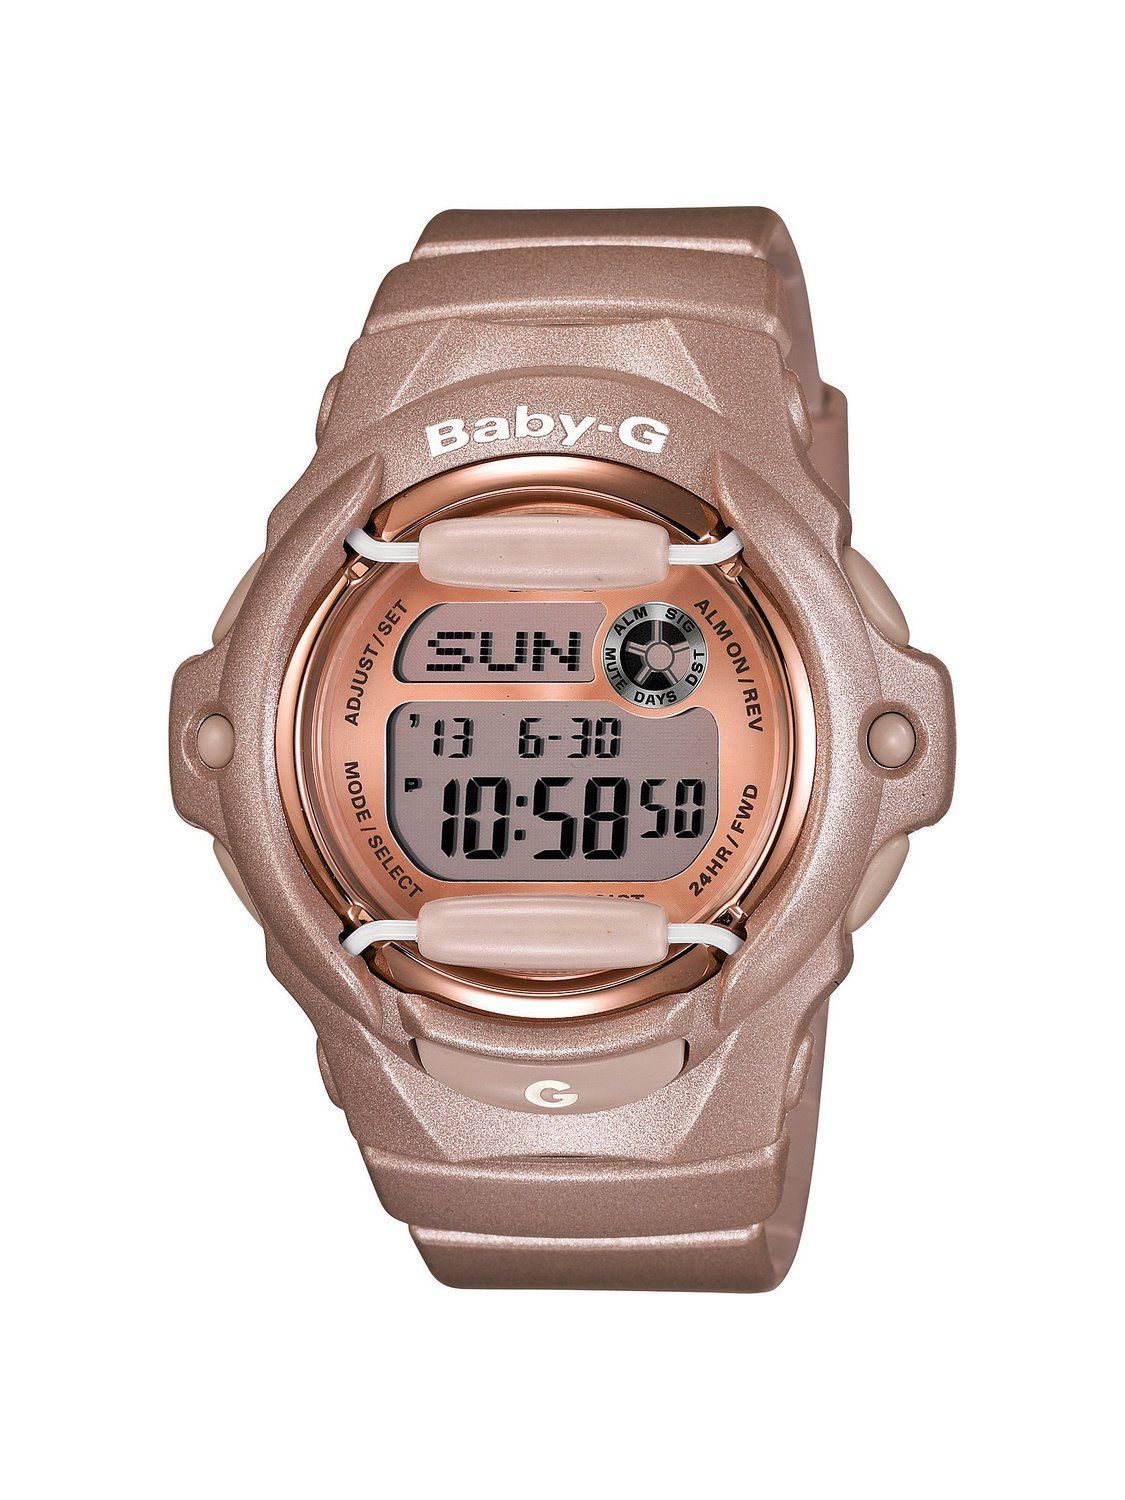 35cc5f18cb6b Amazon.com  Casio Women s BG169G-4 Baby G Pink Champagne Watch  Casio Baby-G   Watches